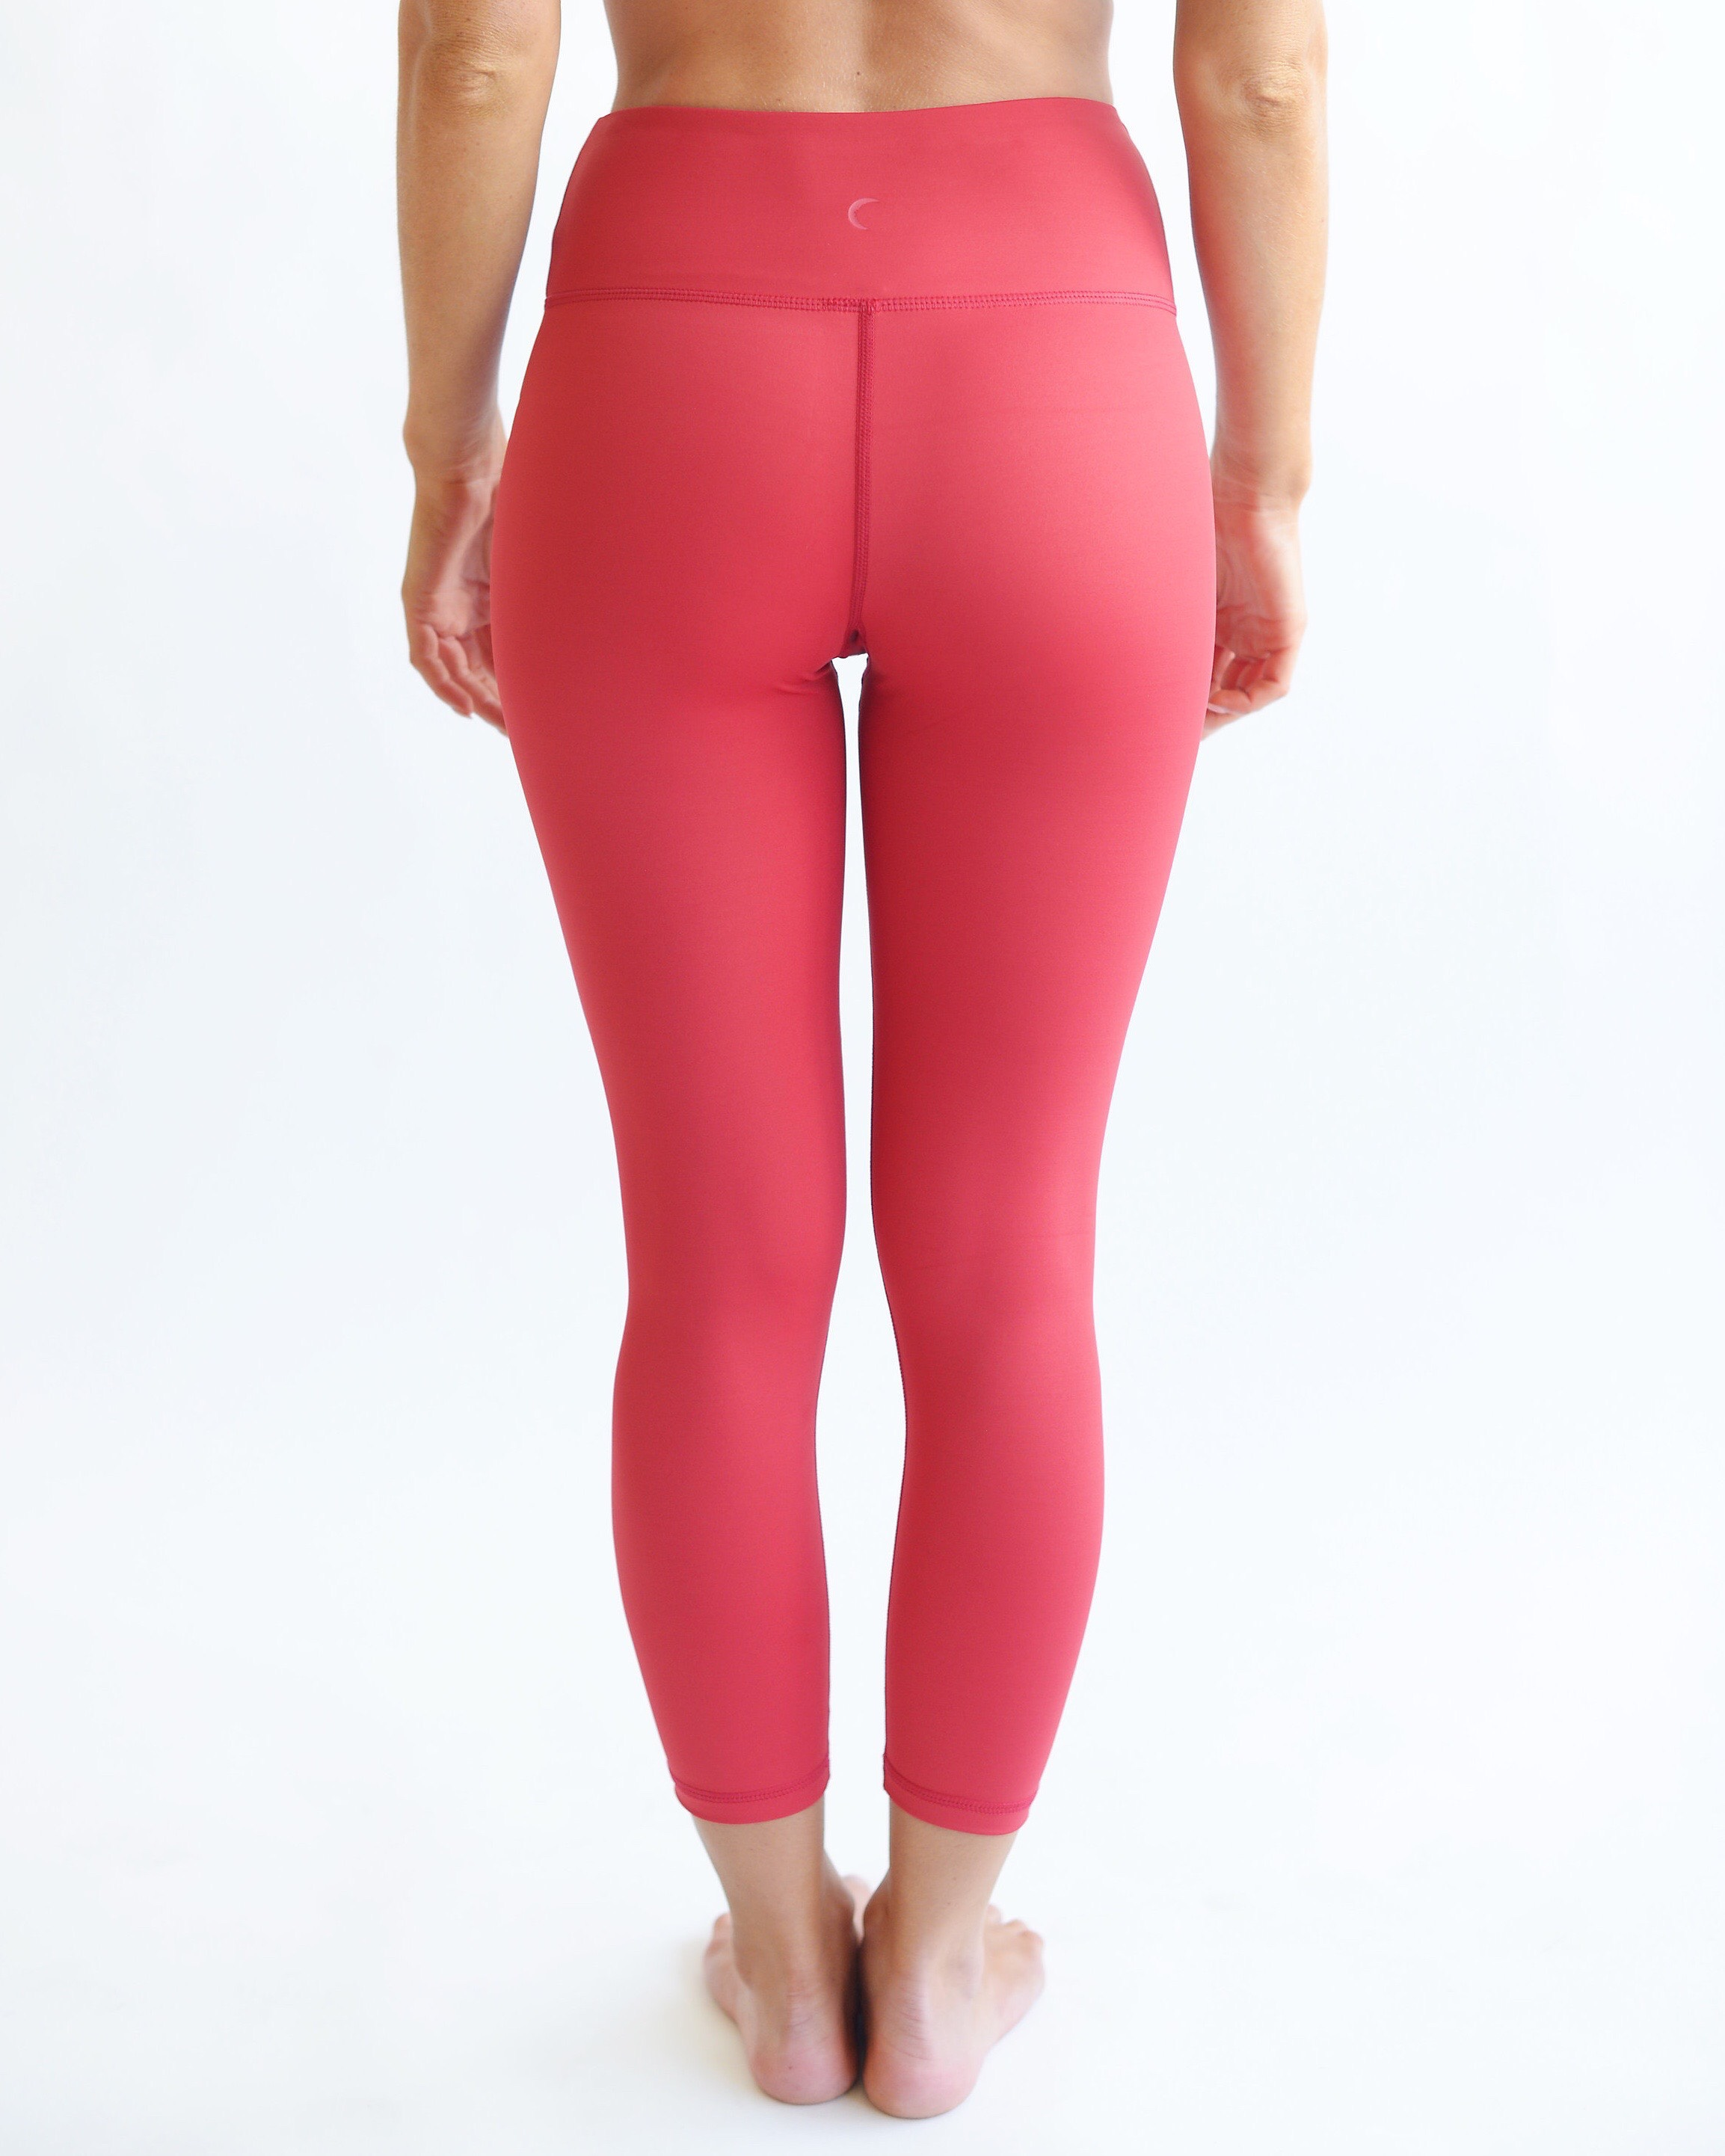 1689-Rose_Leggings-back.jpg